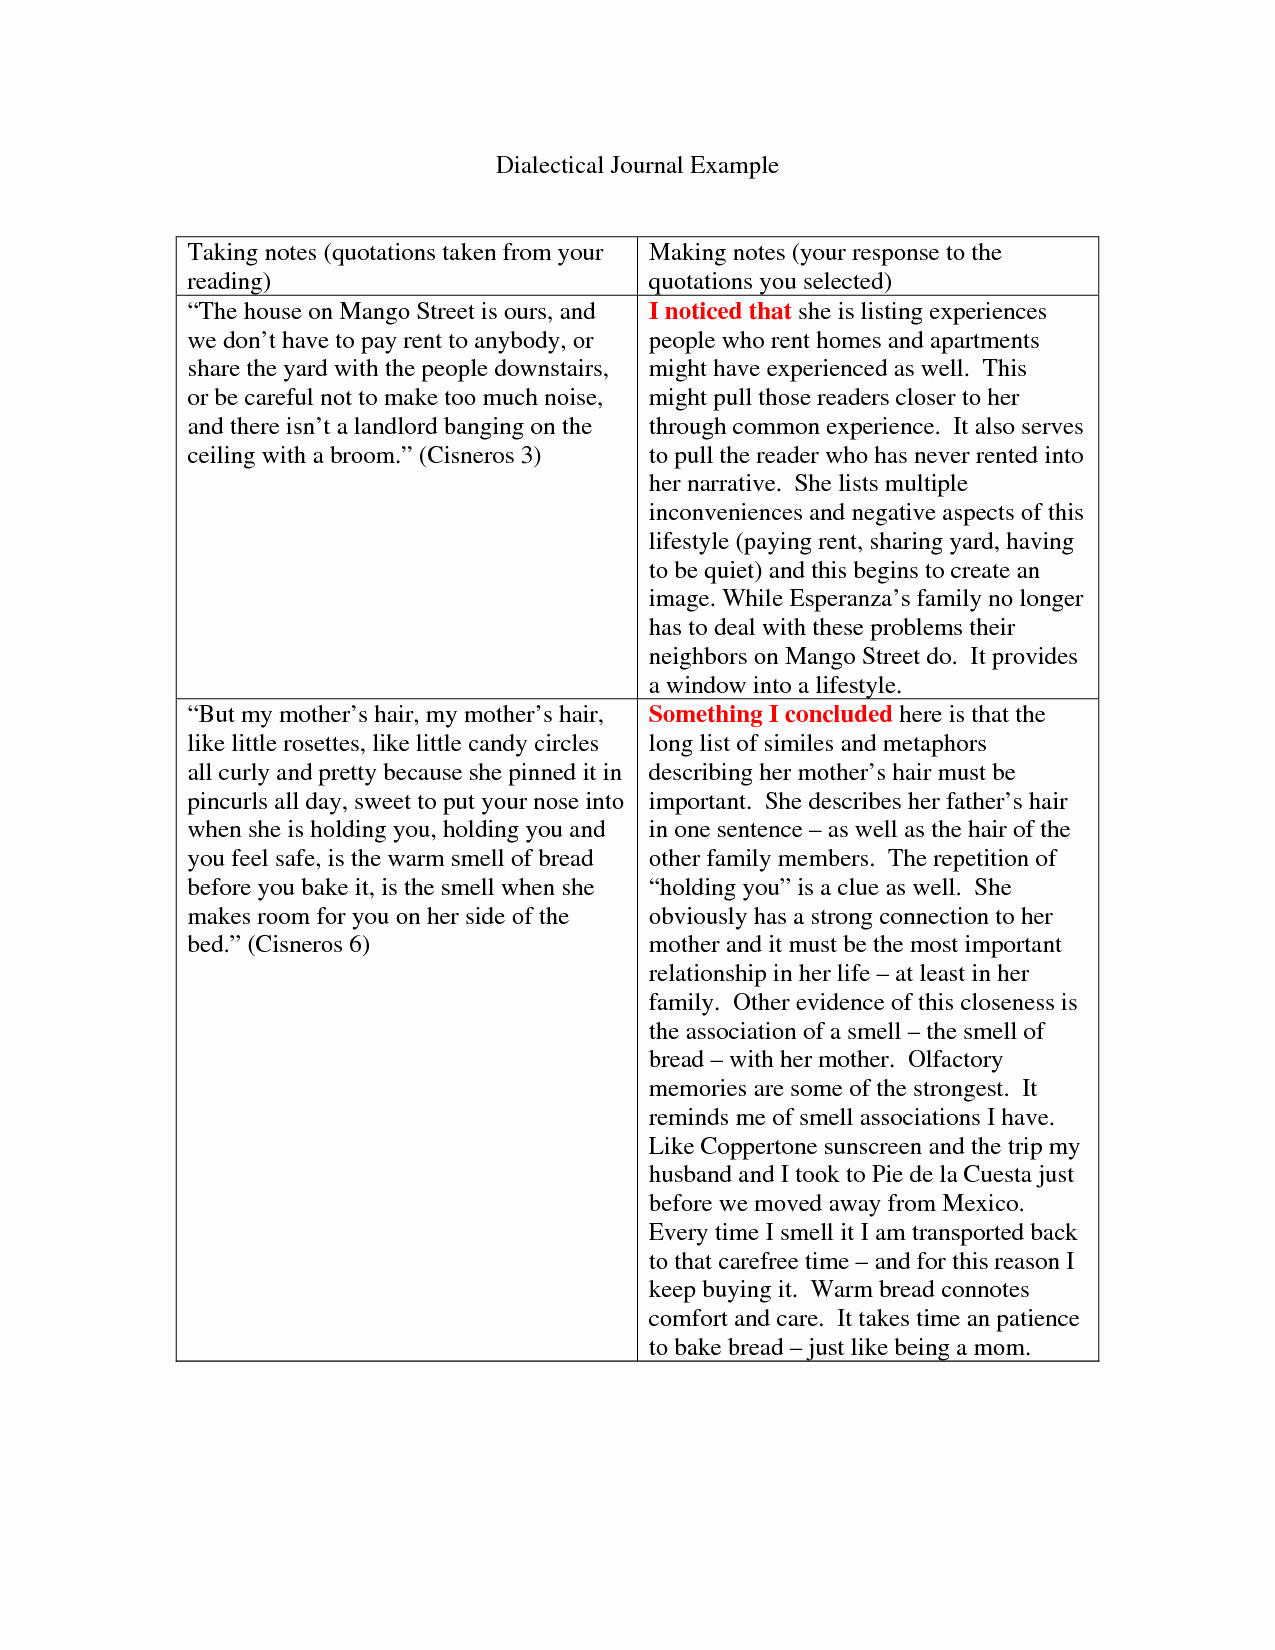 Double Entry Journal Template Lovely Dialectical Journal Template